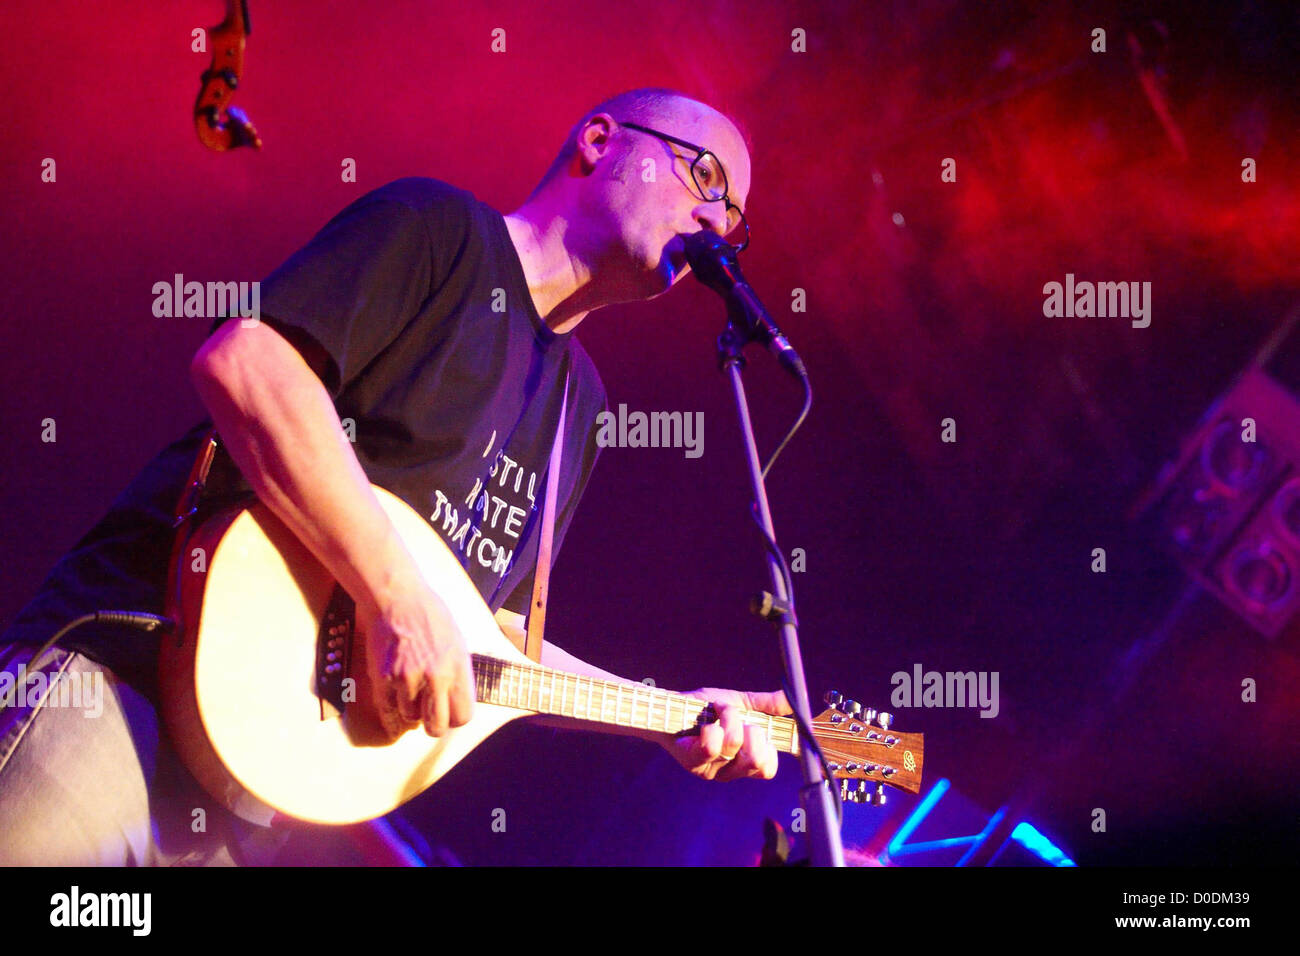 Adrian Edmondson of The Bad Shepherds playing at The Brook Southampton, England - Stock Image